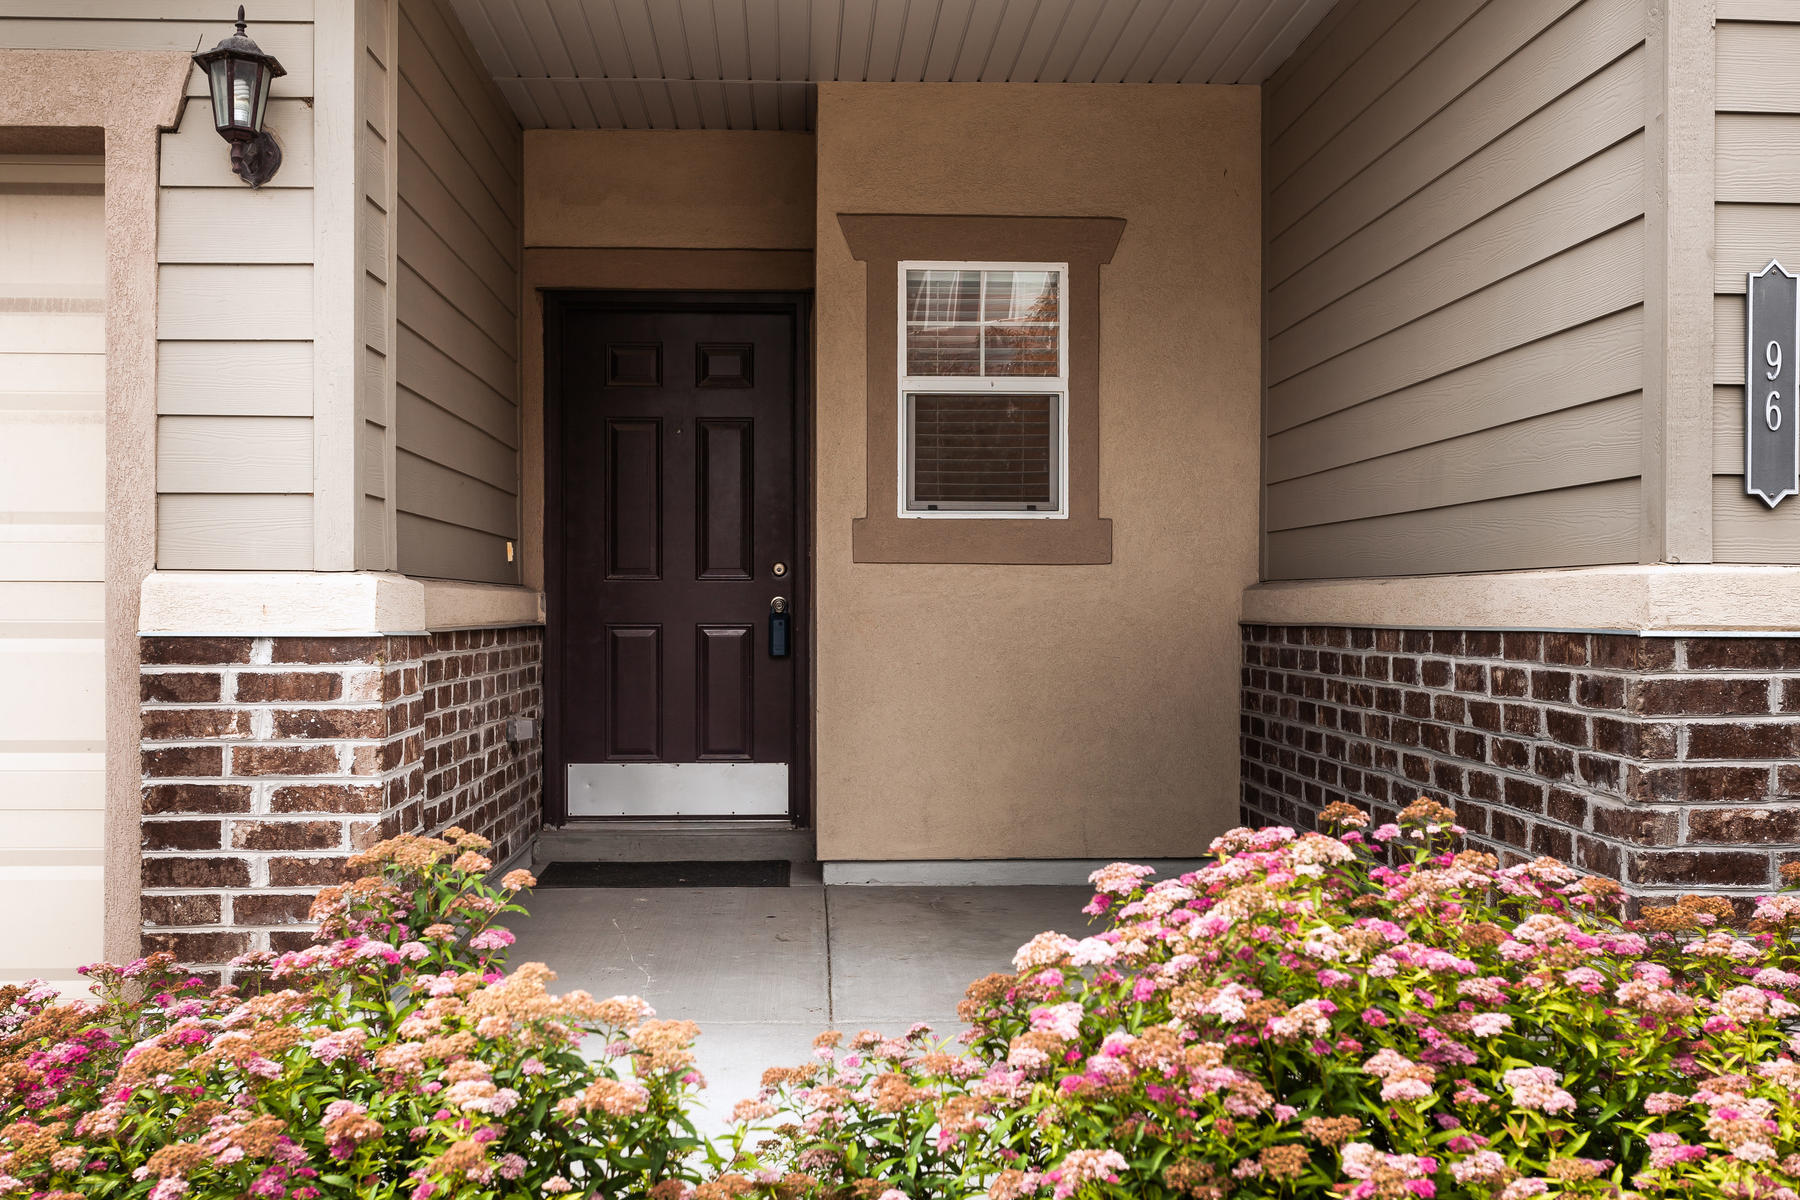 townhouses for Active at Immaculate Sandy Townhome 96 E Durham Street Sandy, Utah 84070 United States